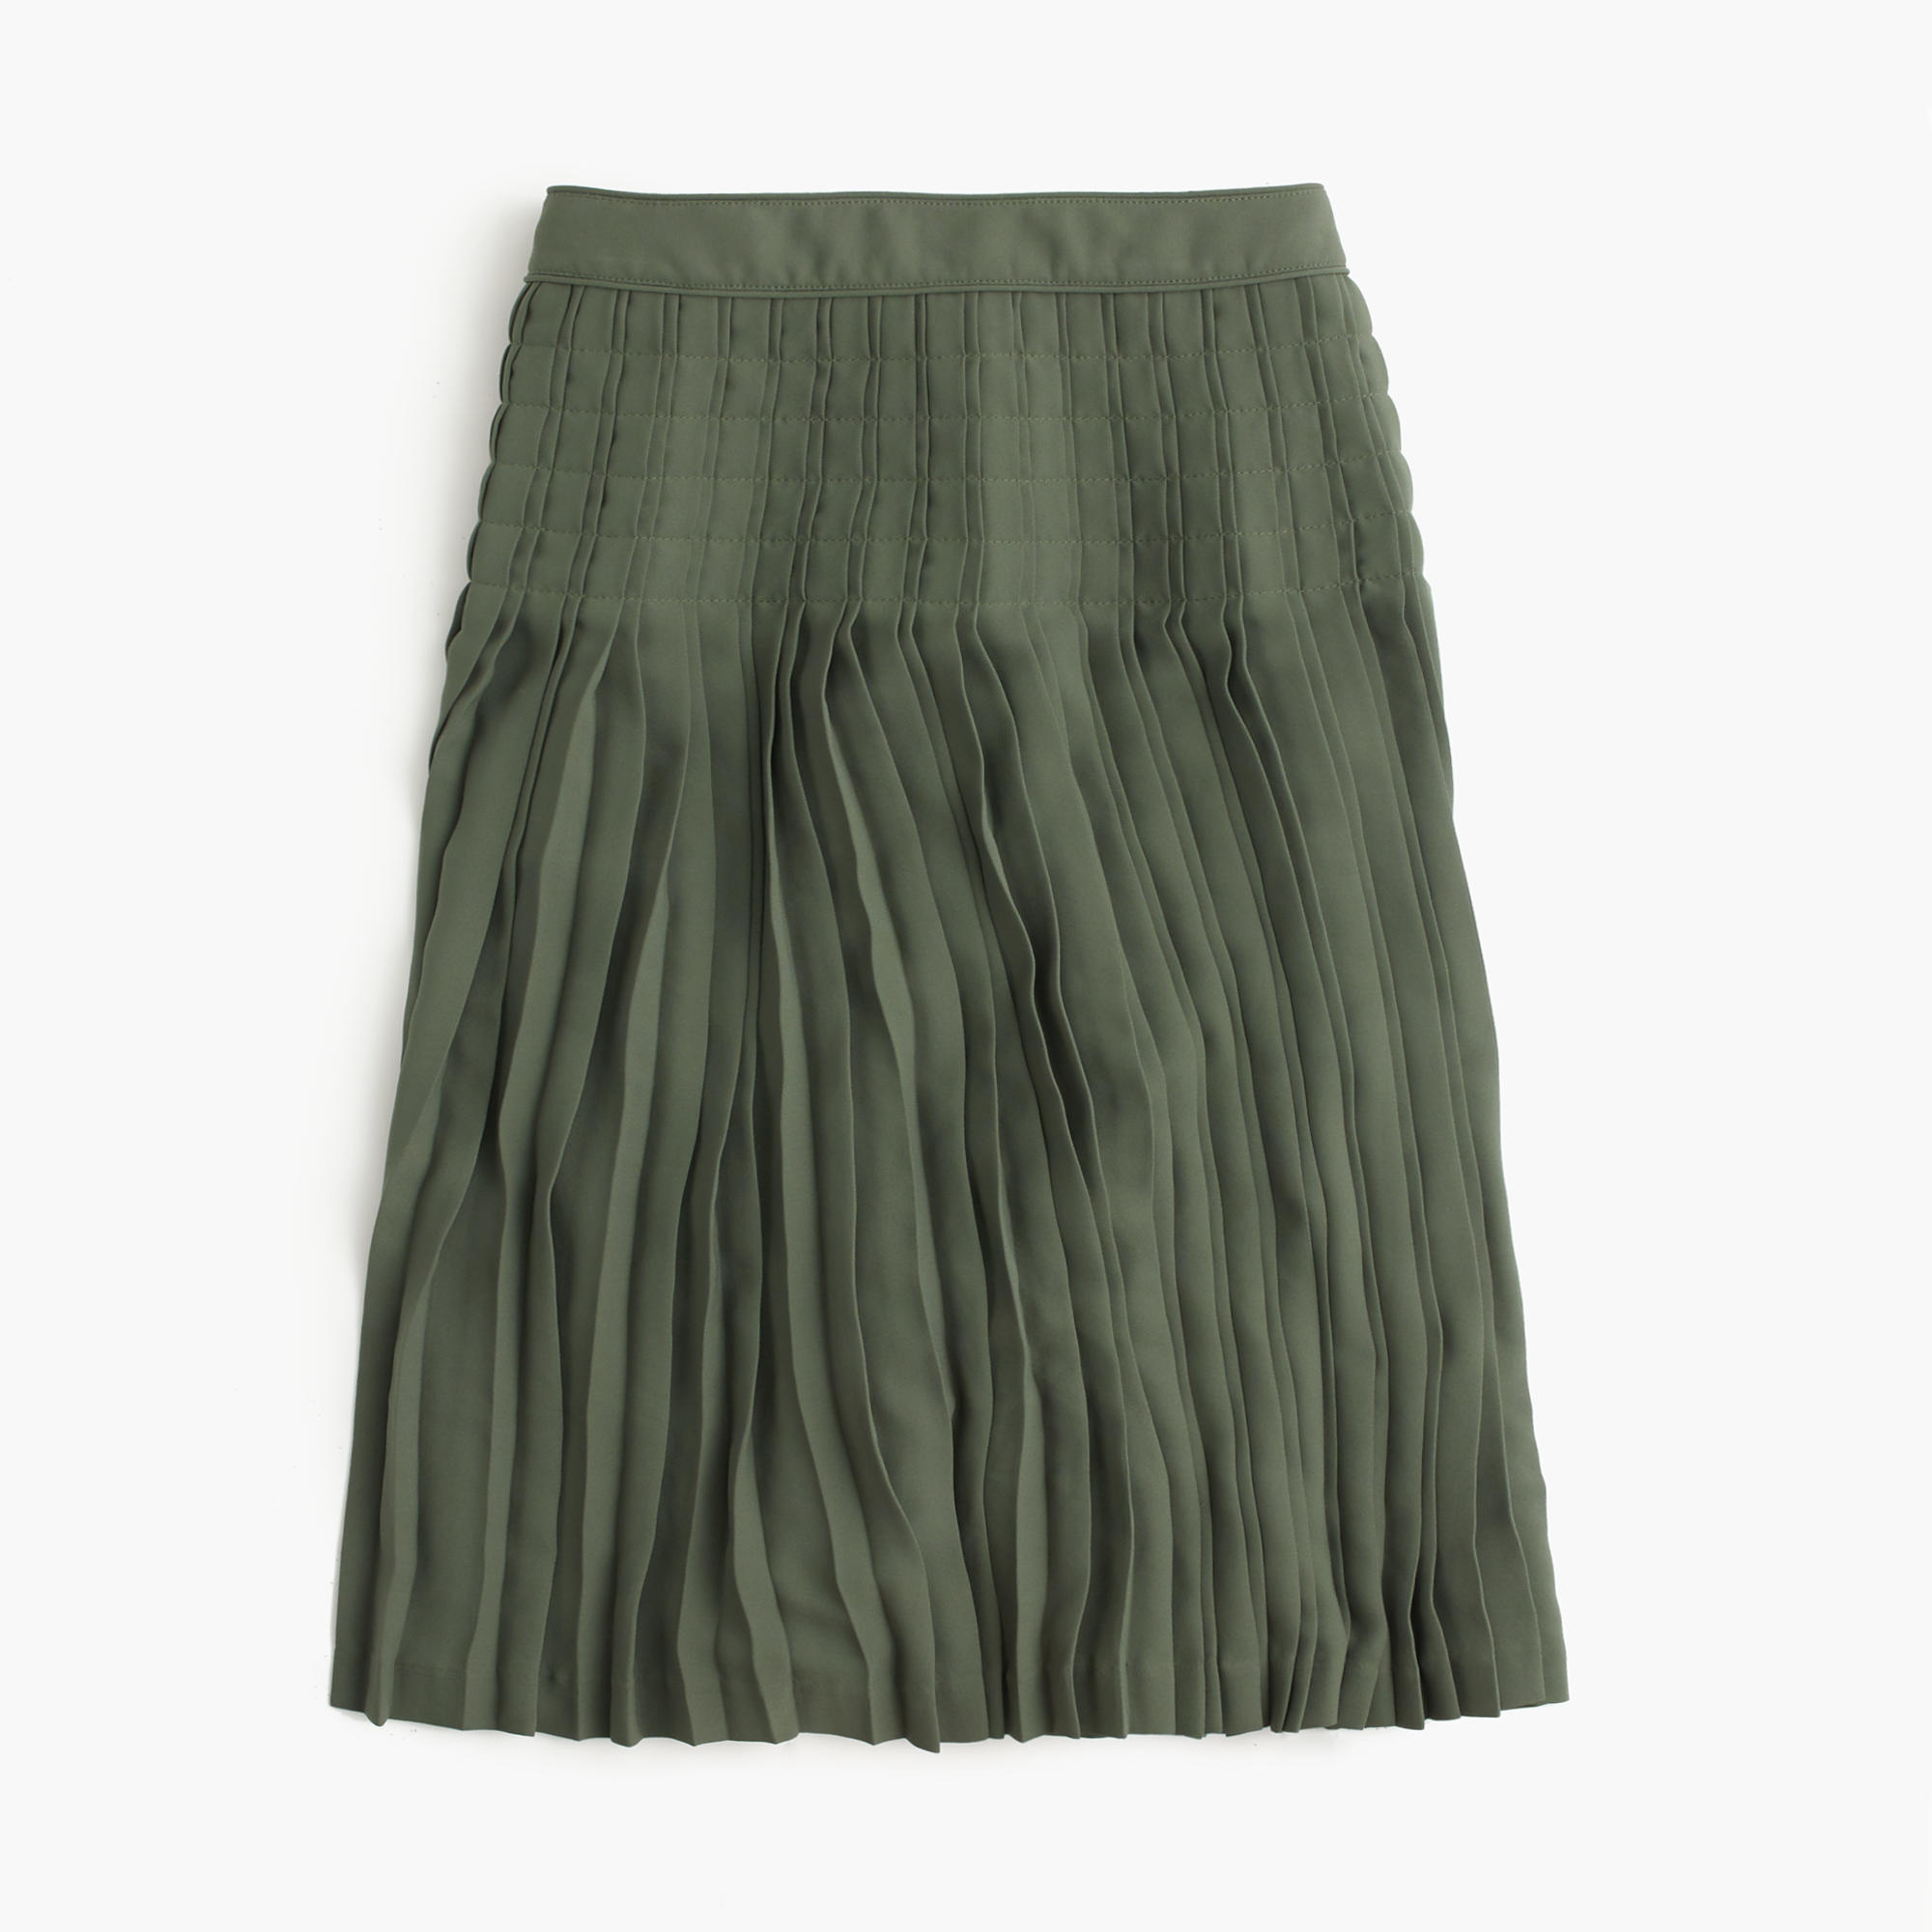 j crew micropleated midi skirt in green lyst